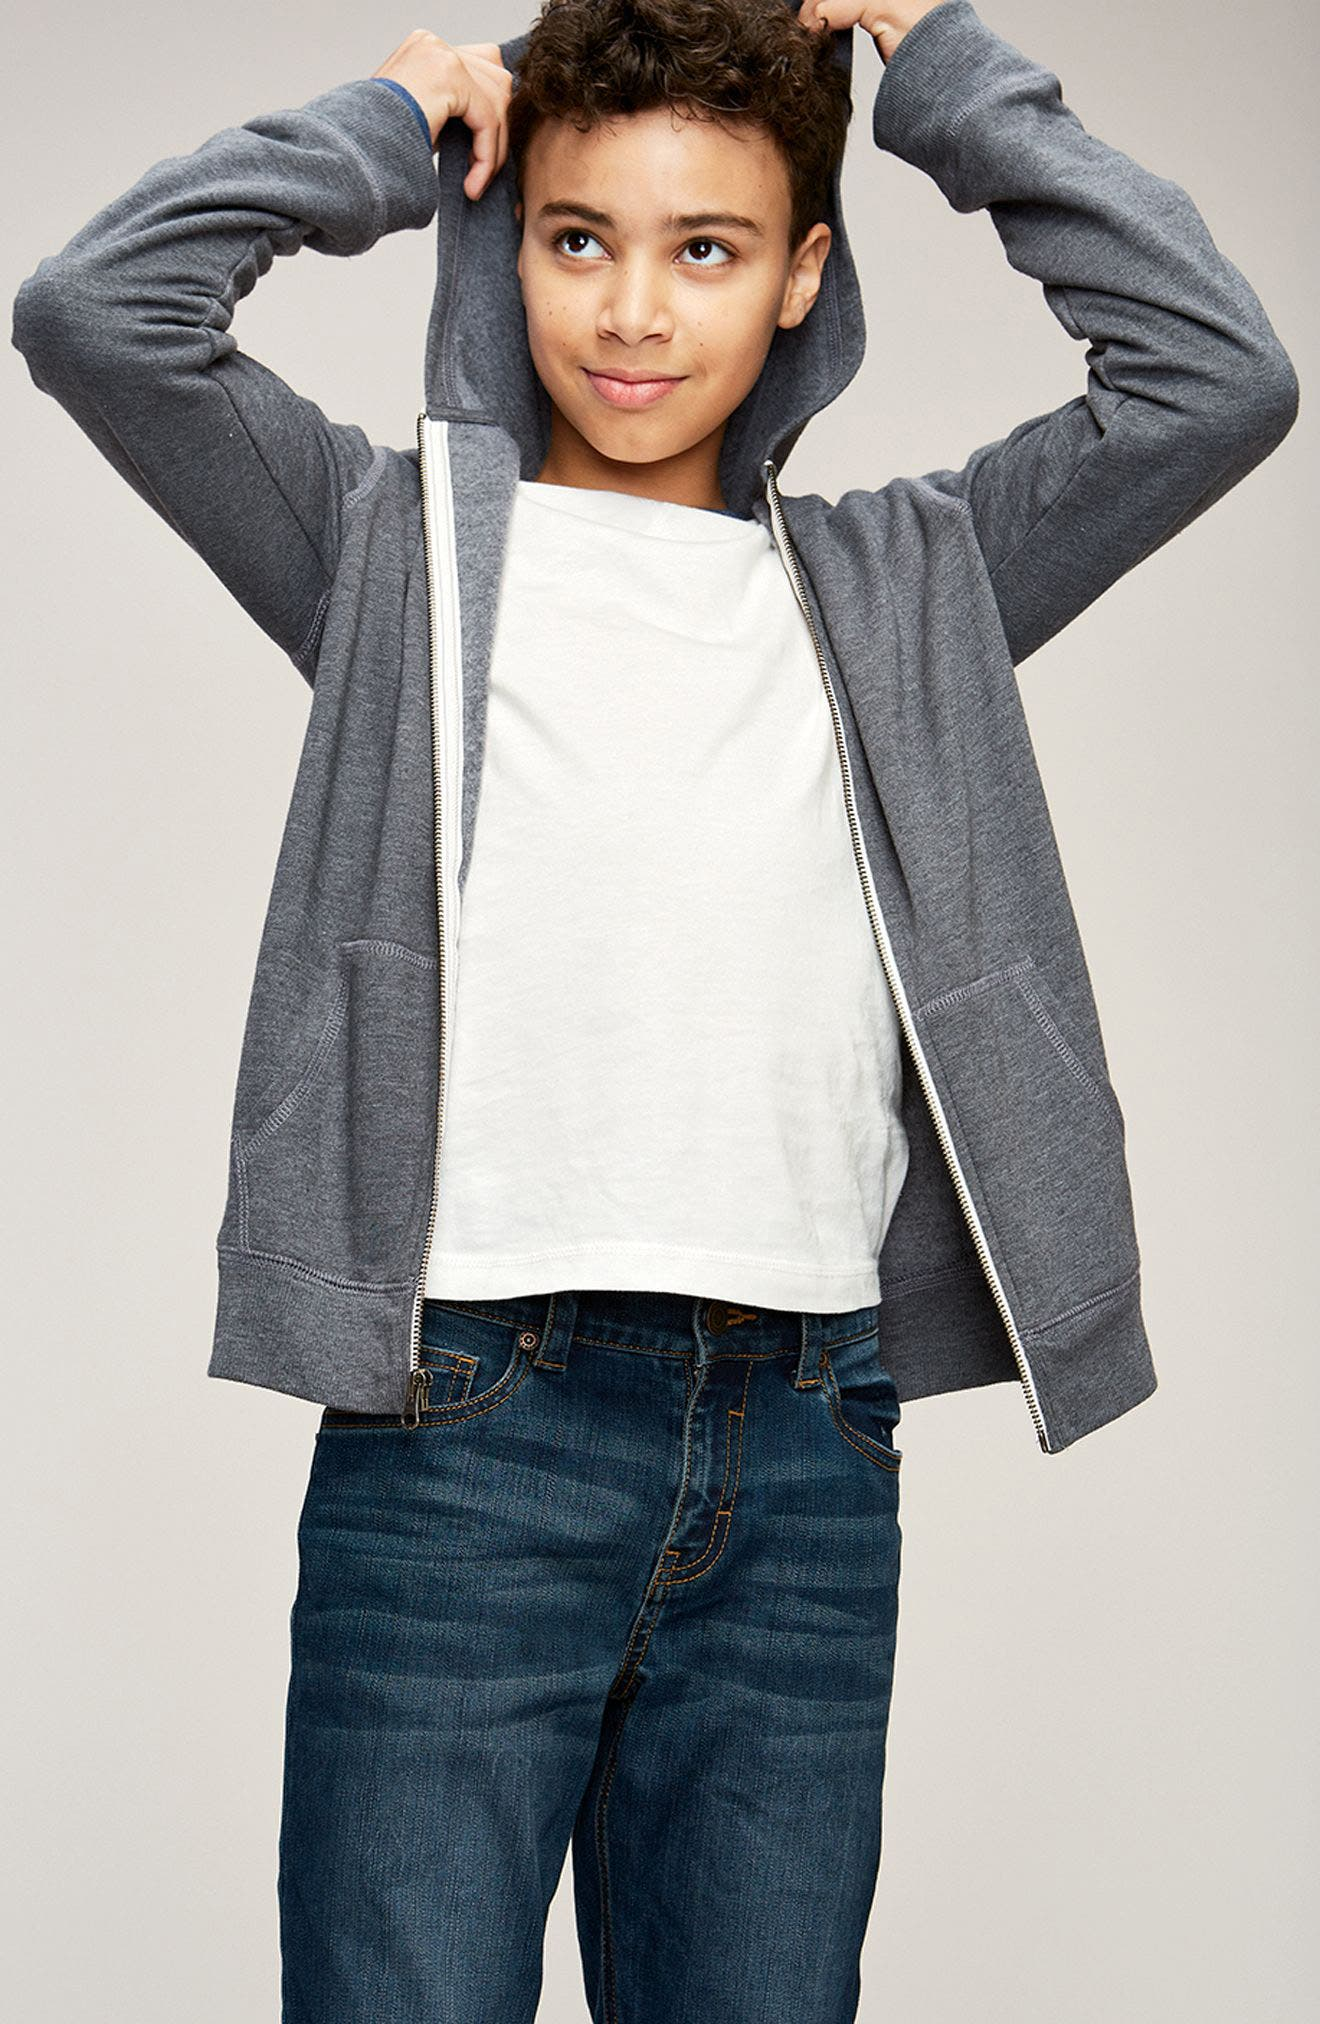 Tucker + Tate Sweatshirt, T-Shirt & Jeans Outfit with Accessories (Big Boys)